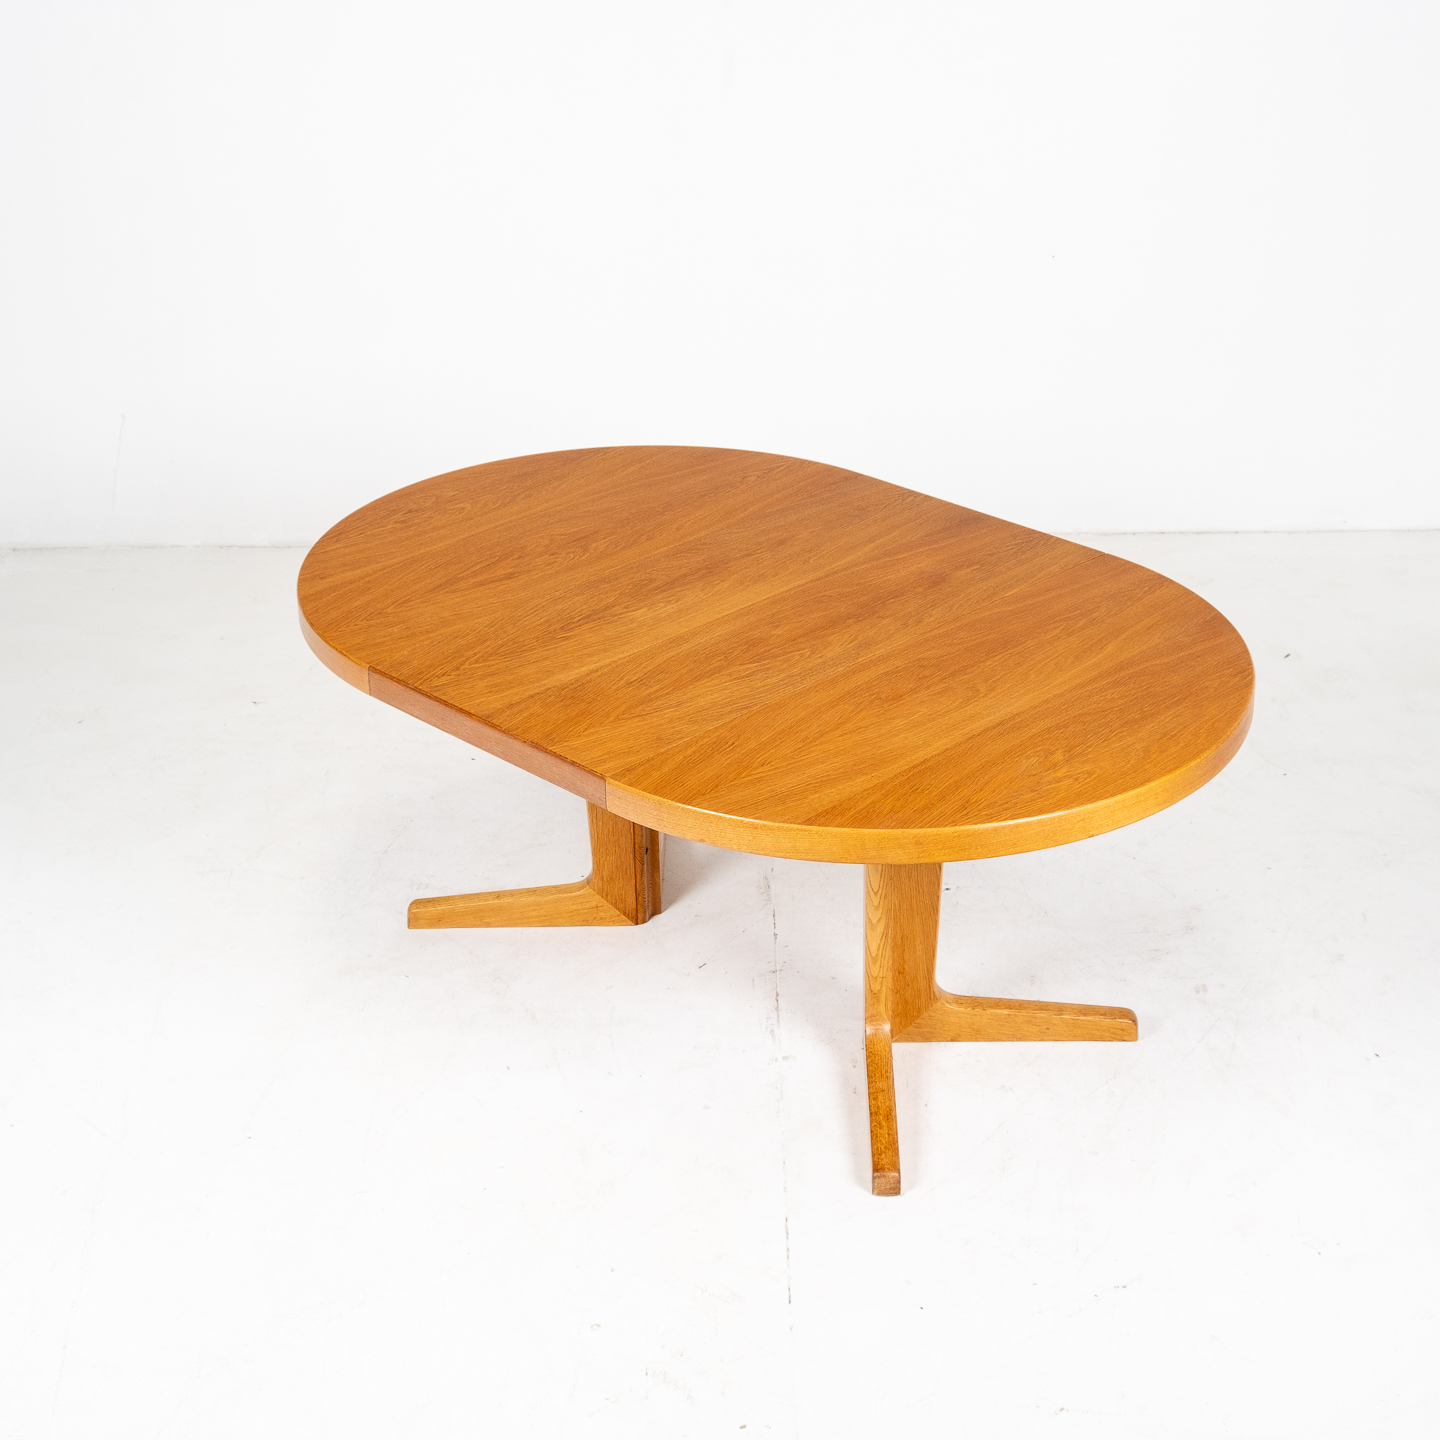 Round Pedestal Dining Table In Oak With Three Extension Leaves, 1960s, Denmark05